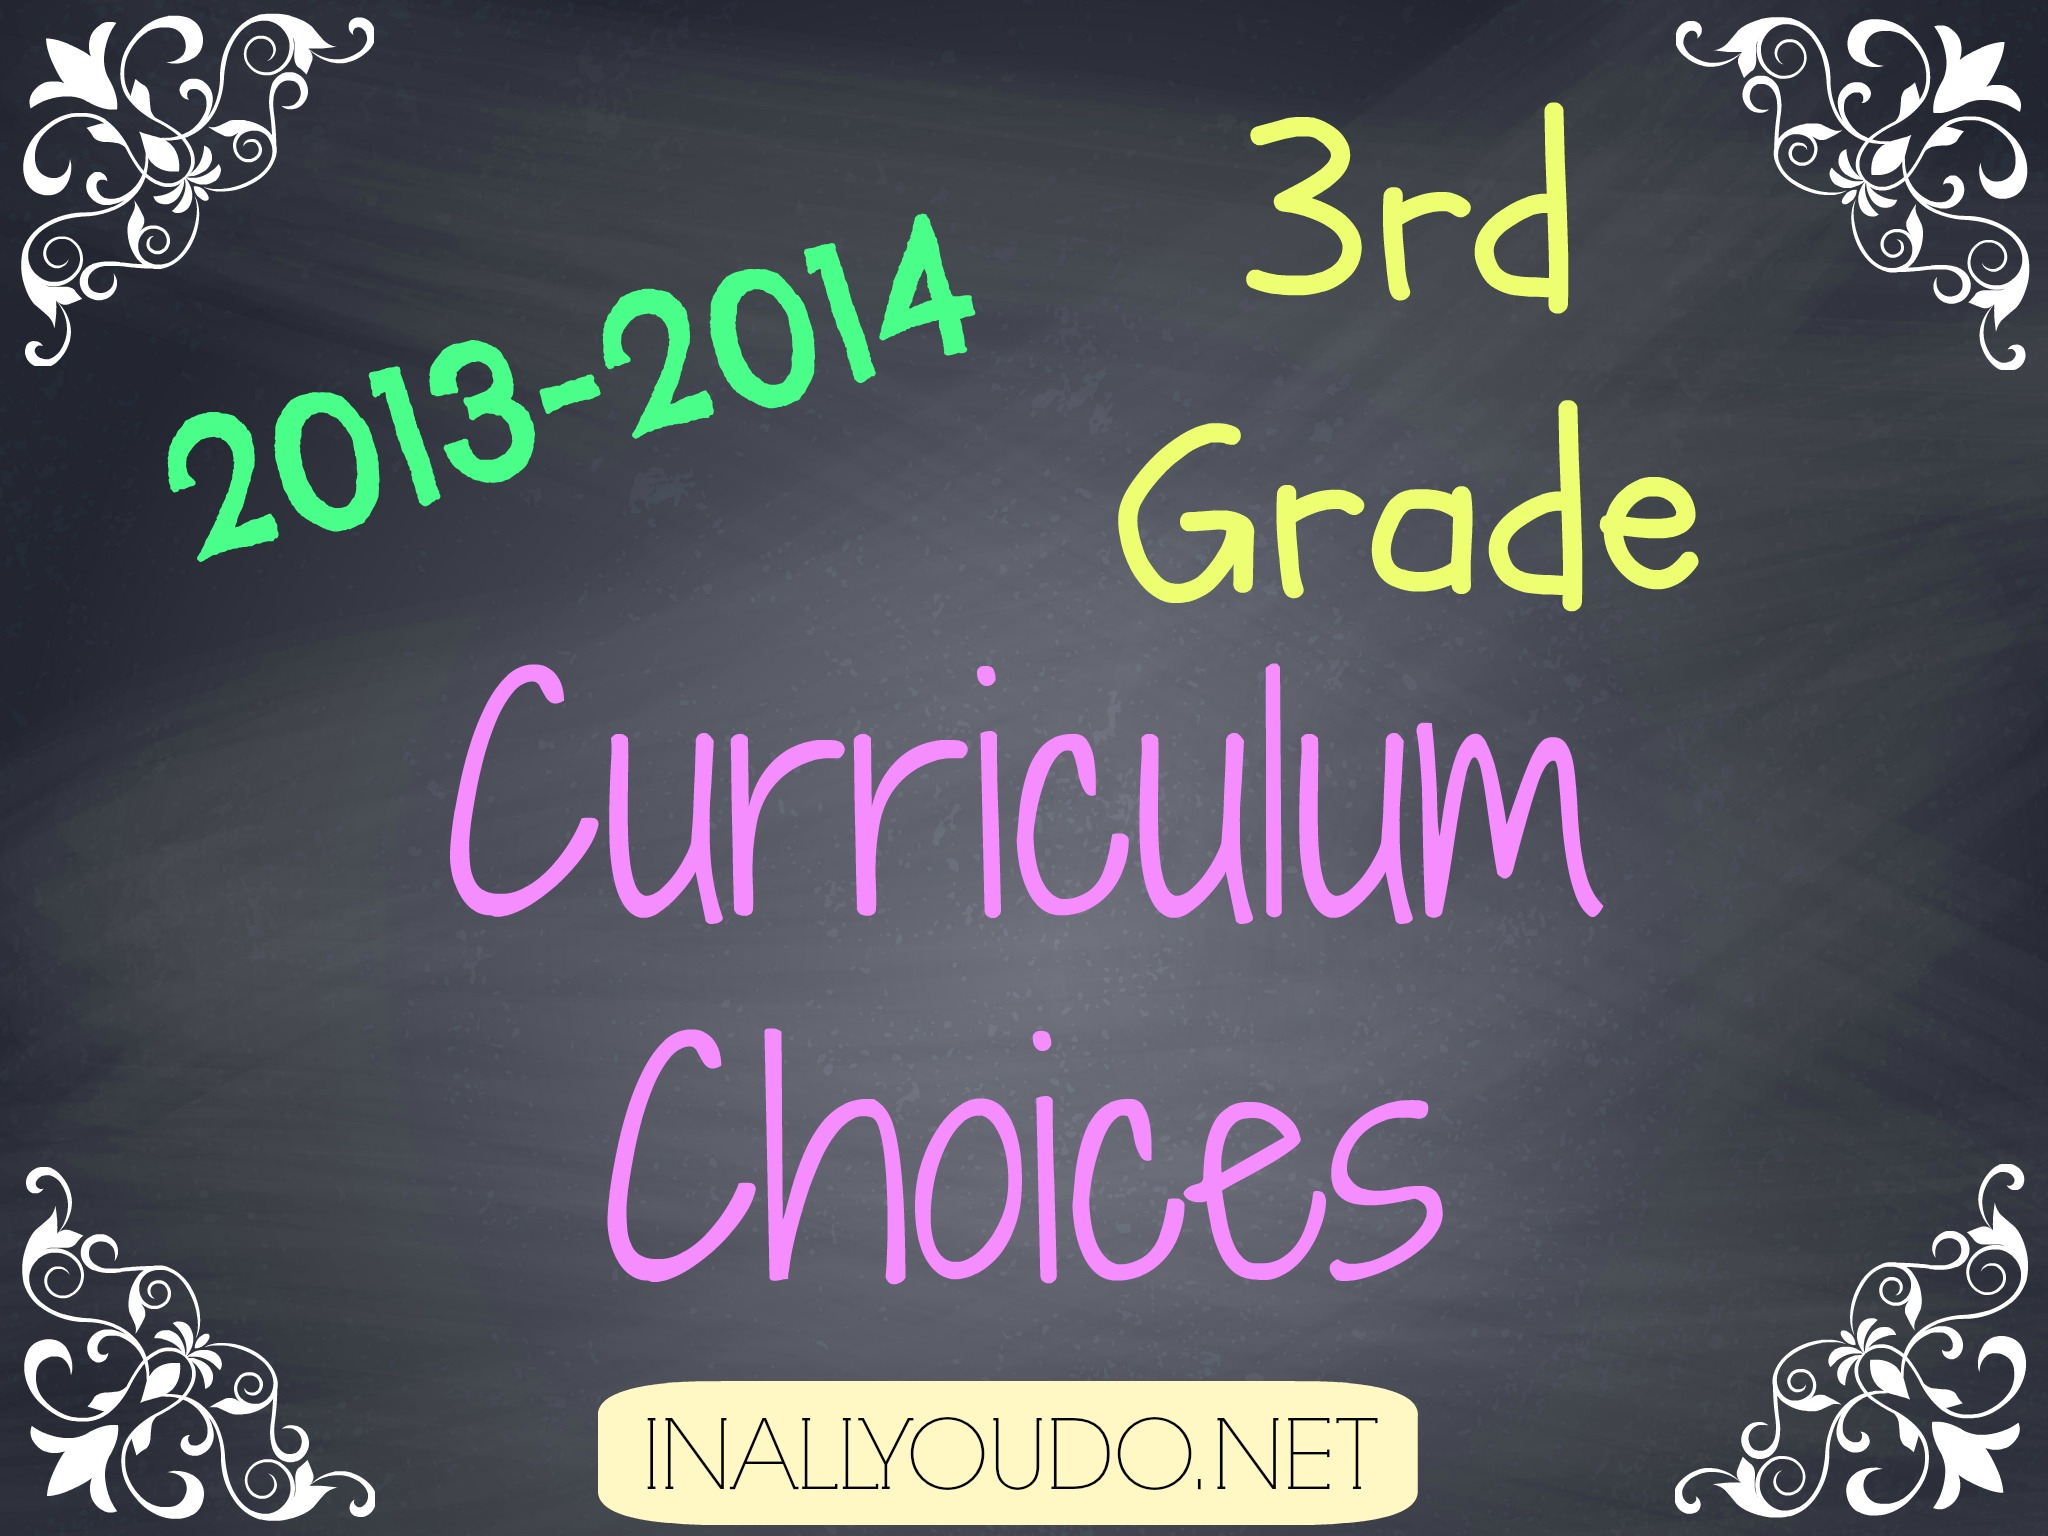 3rd grade curriculum choices